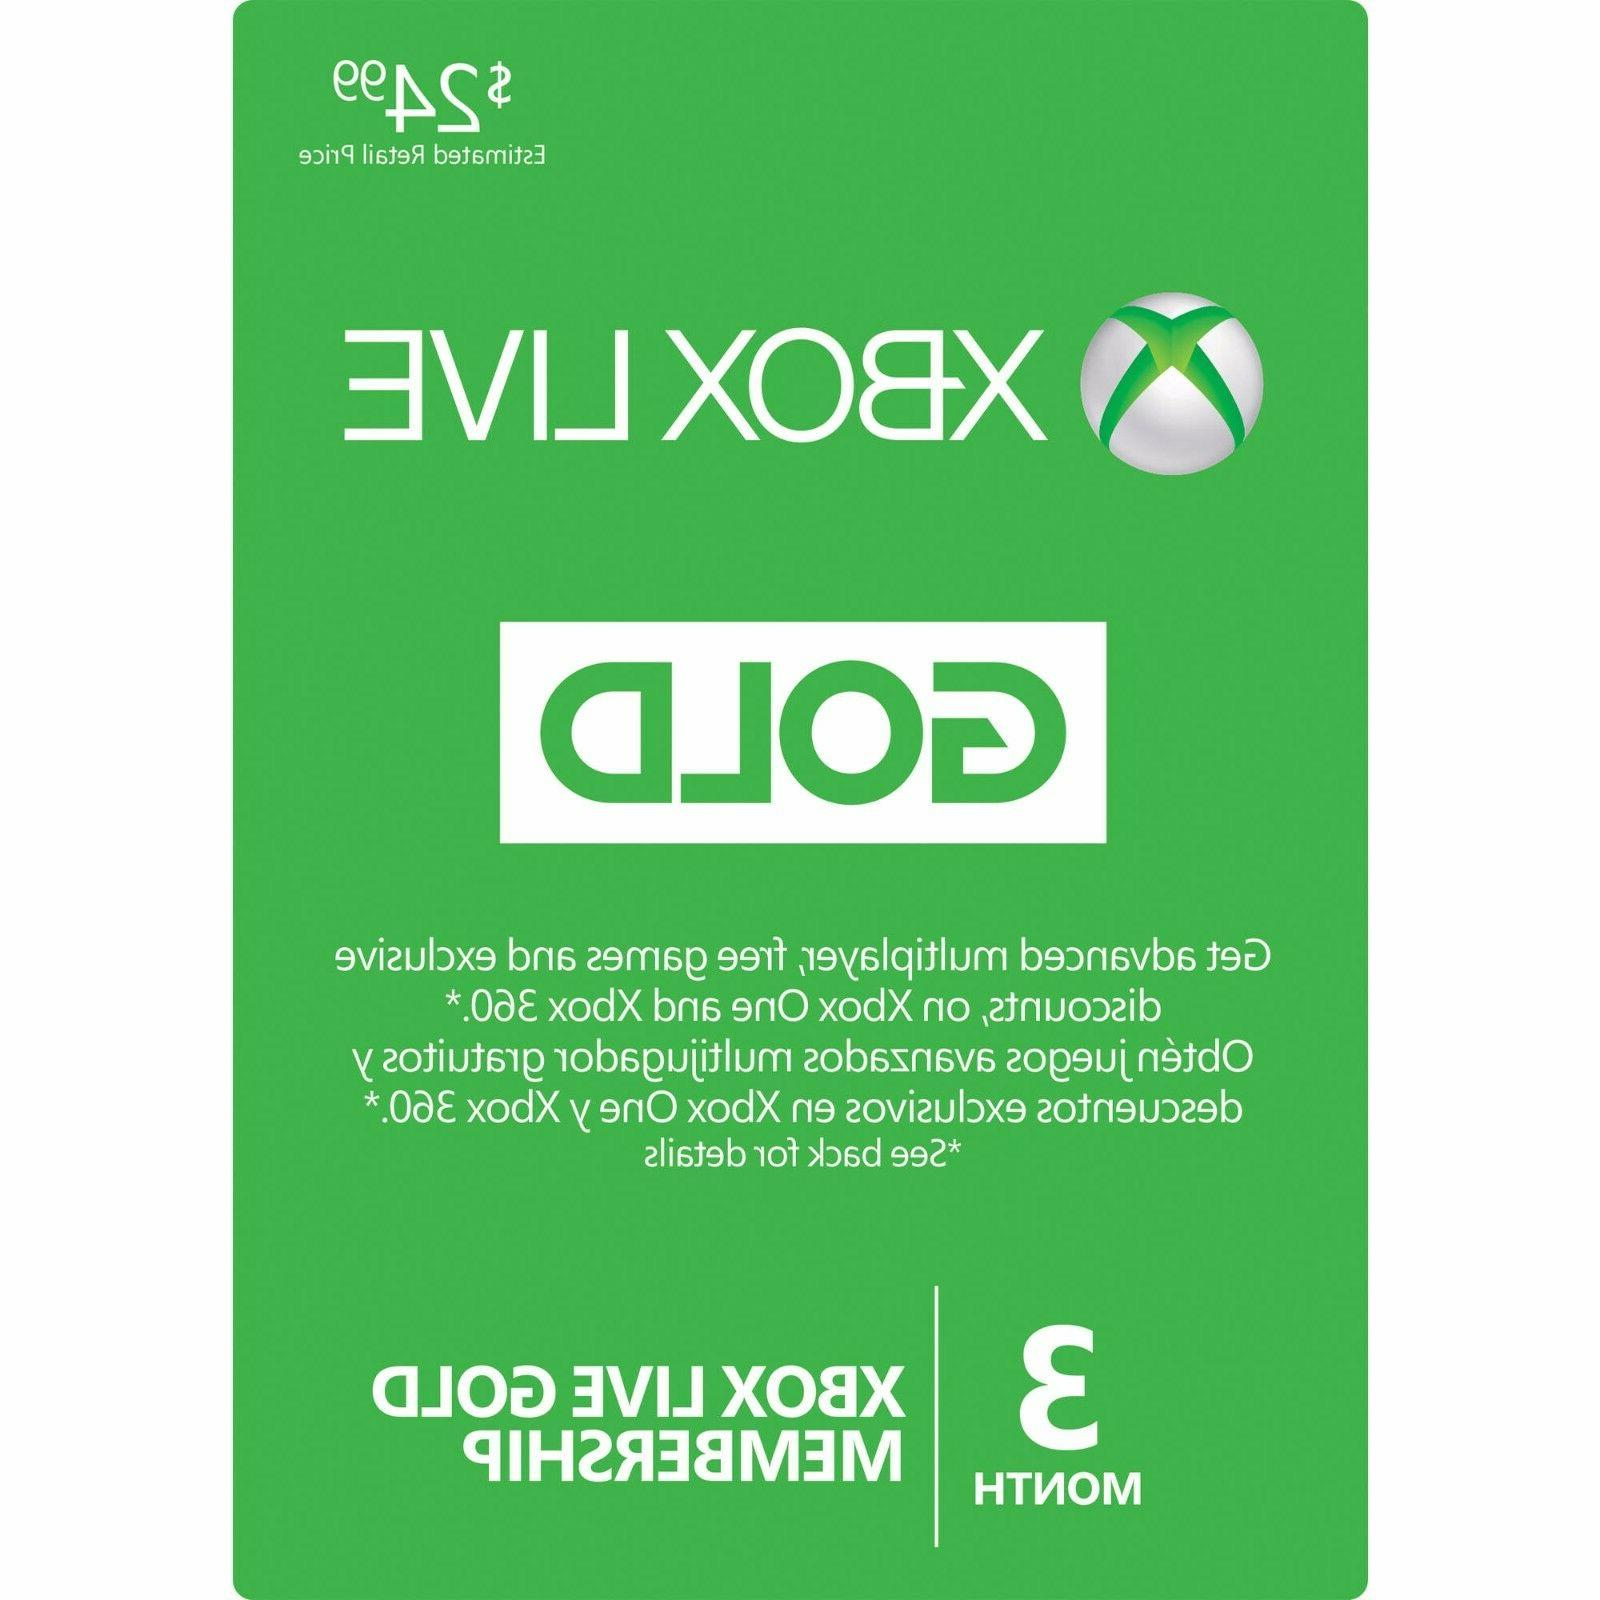 Microsoft 3 Month Xbox Live Gold Membership Subscription Qui